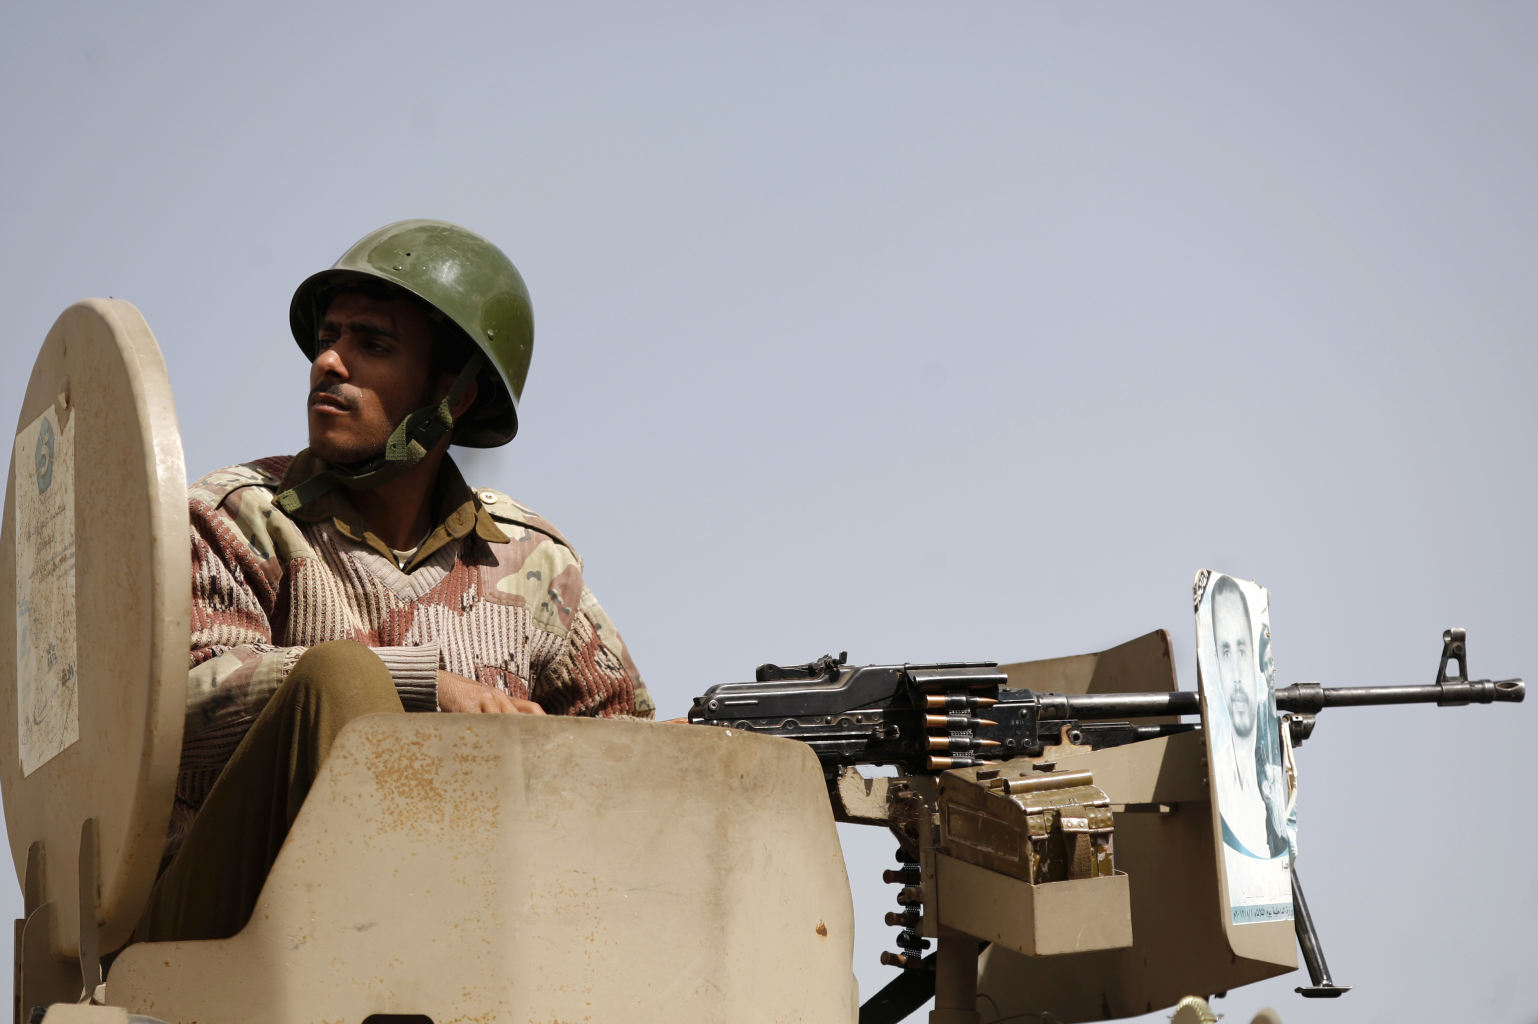 A Yemeni soldier sits atop a military vehicle securing a street during a rally by pro-democracy protestors in Sanaa, Yemen, Friday, Dec. 28, 2012.